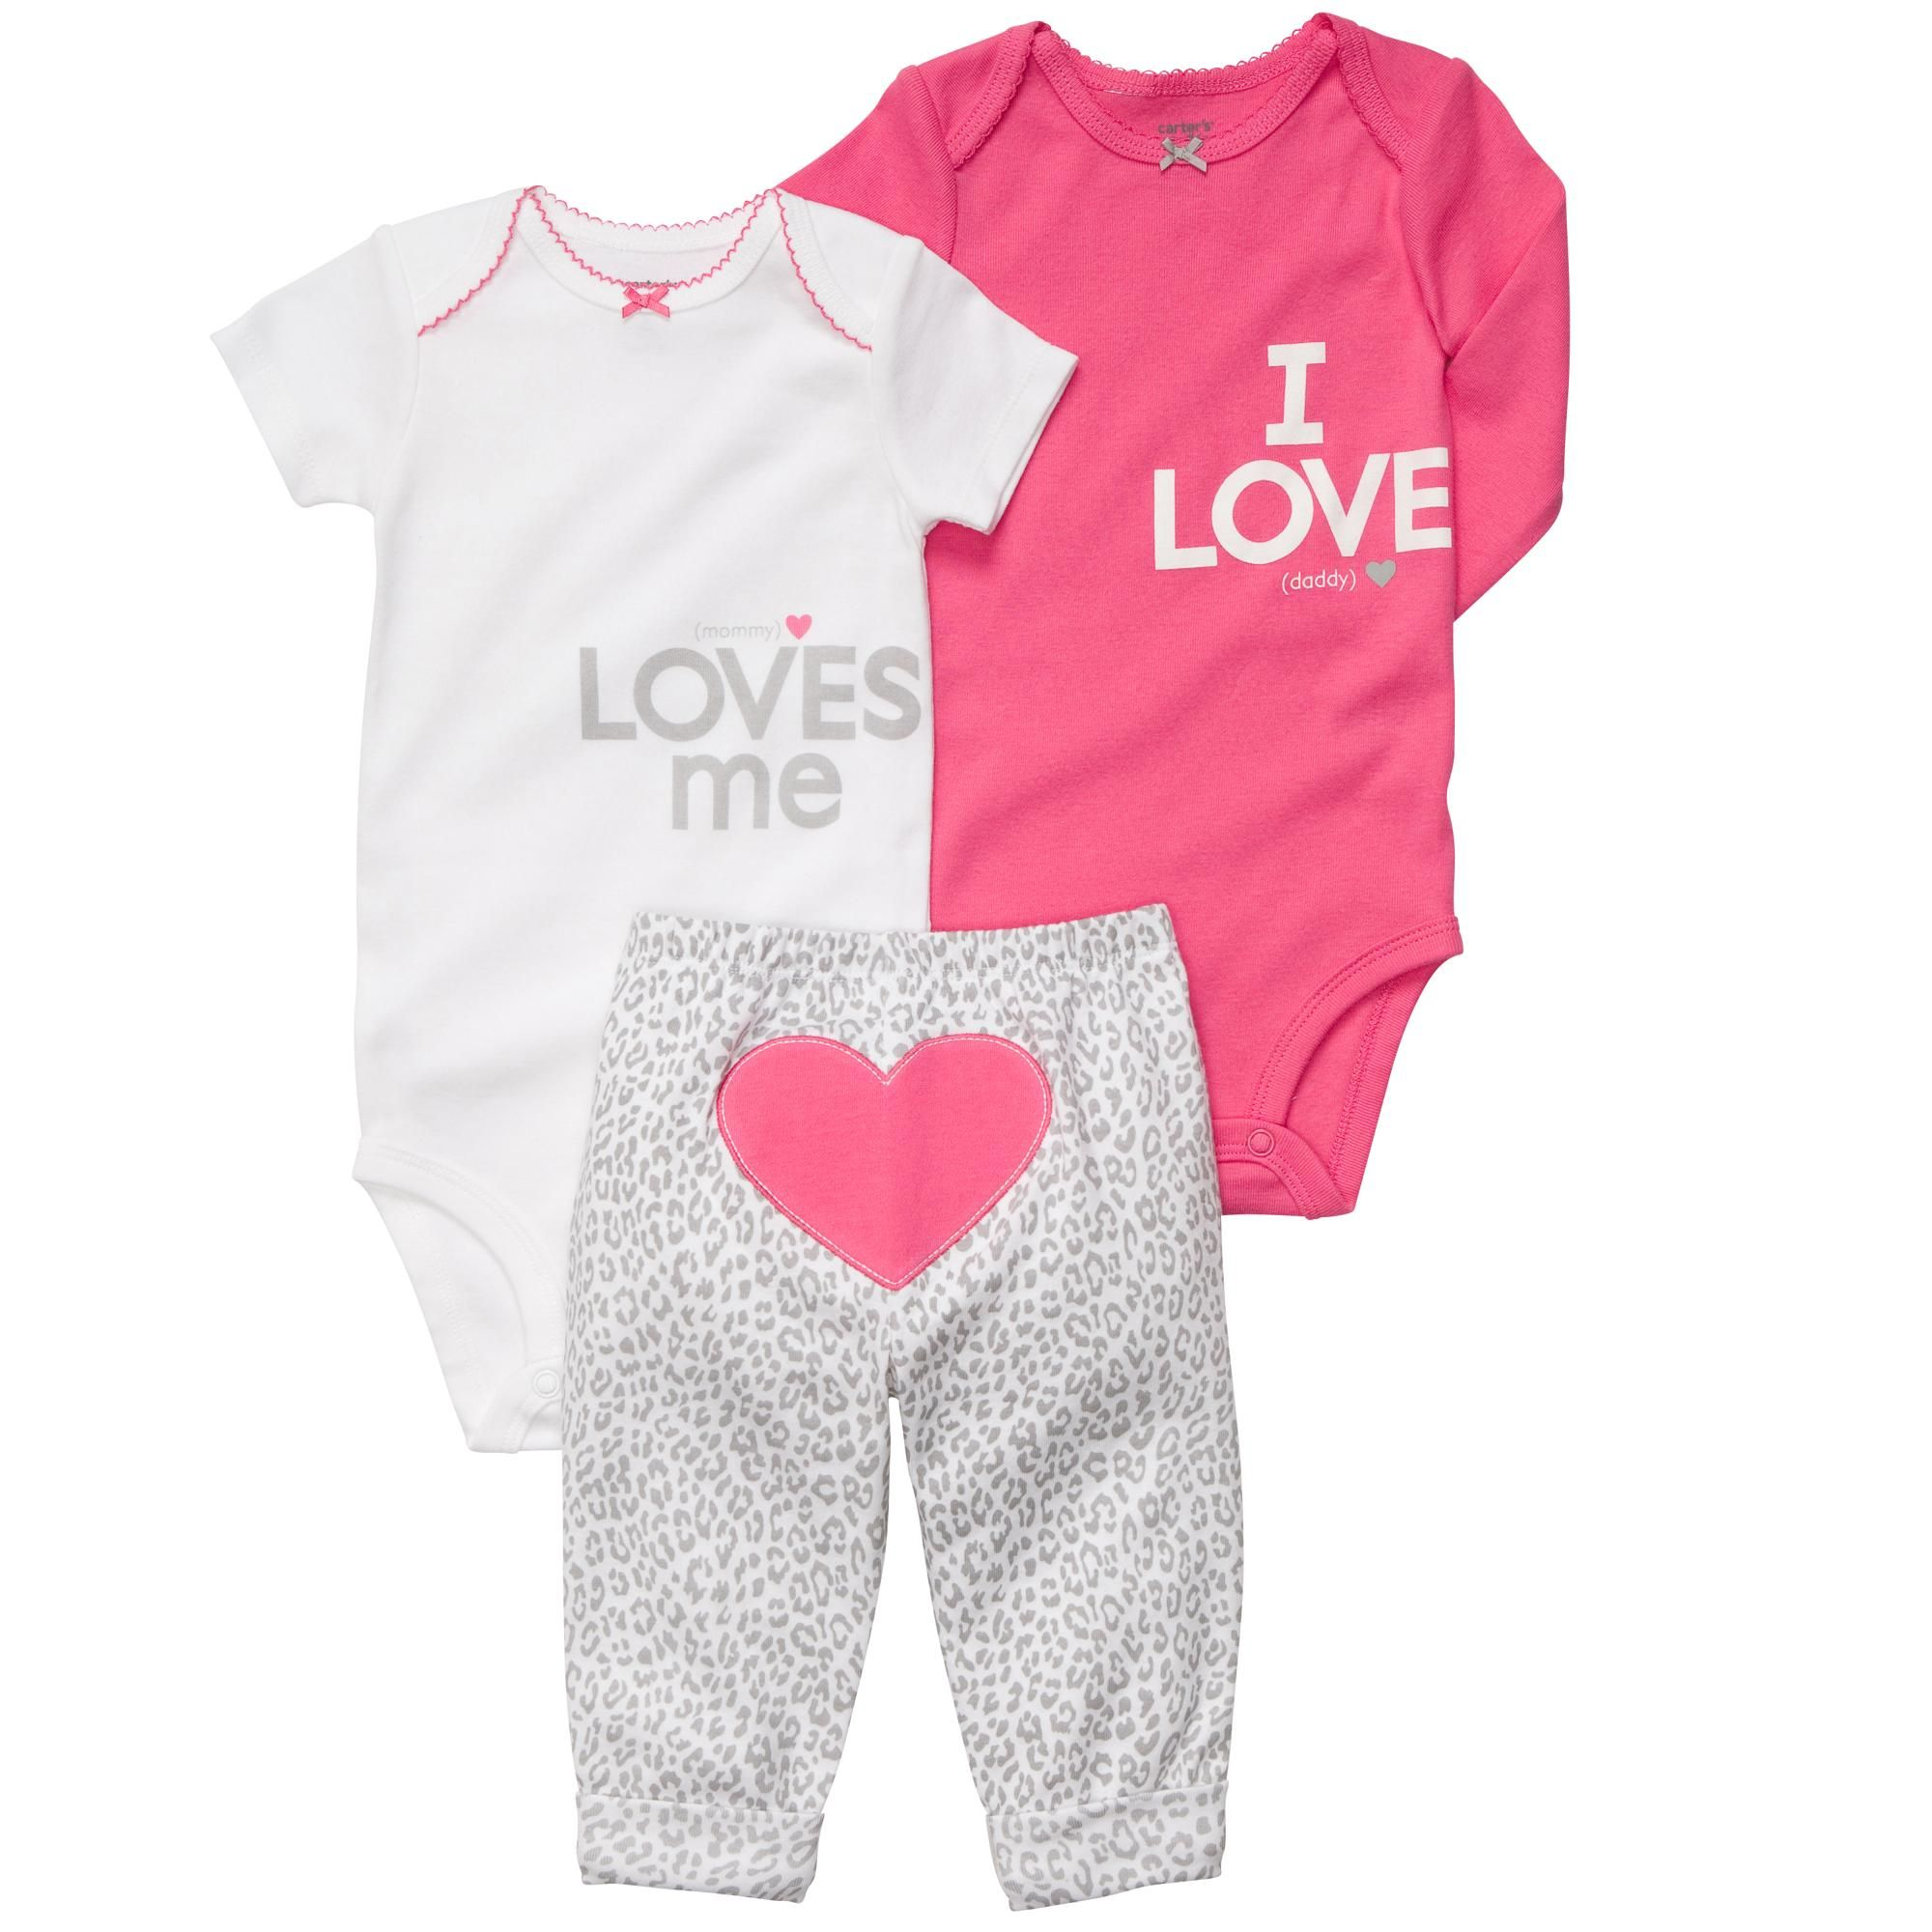 mommy loves me and i love daddy We have this for our baby girl we